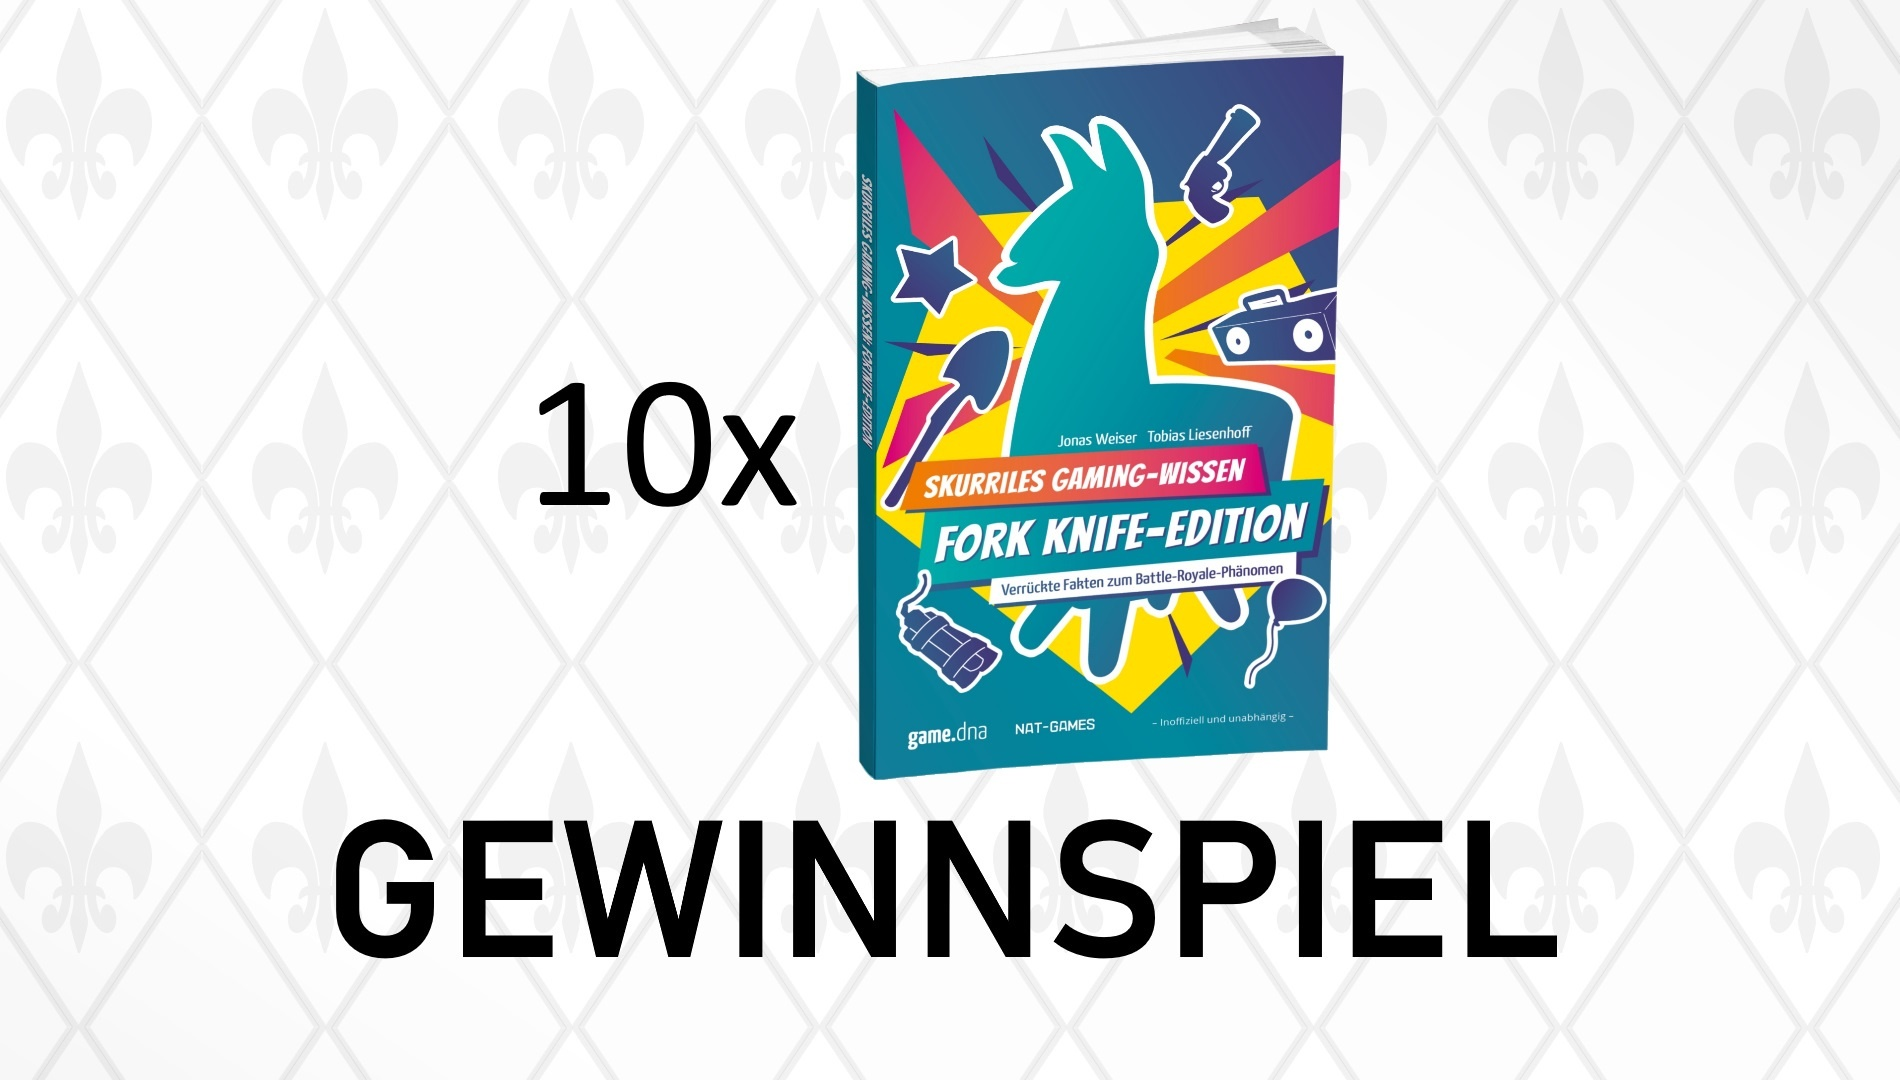 Skurriles Gaming-Wissen: Fork-Knife-Edition